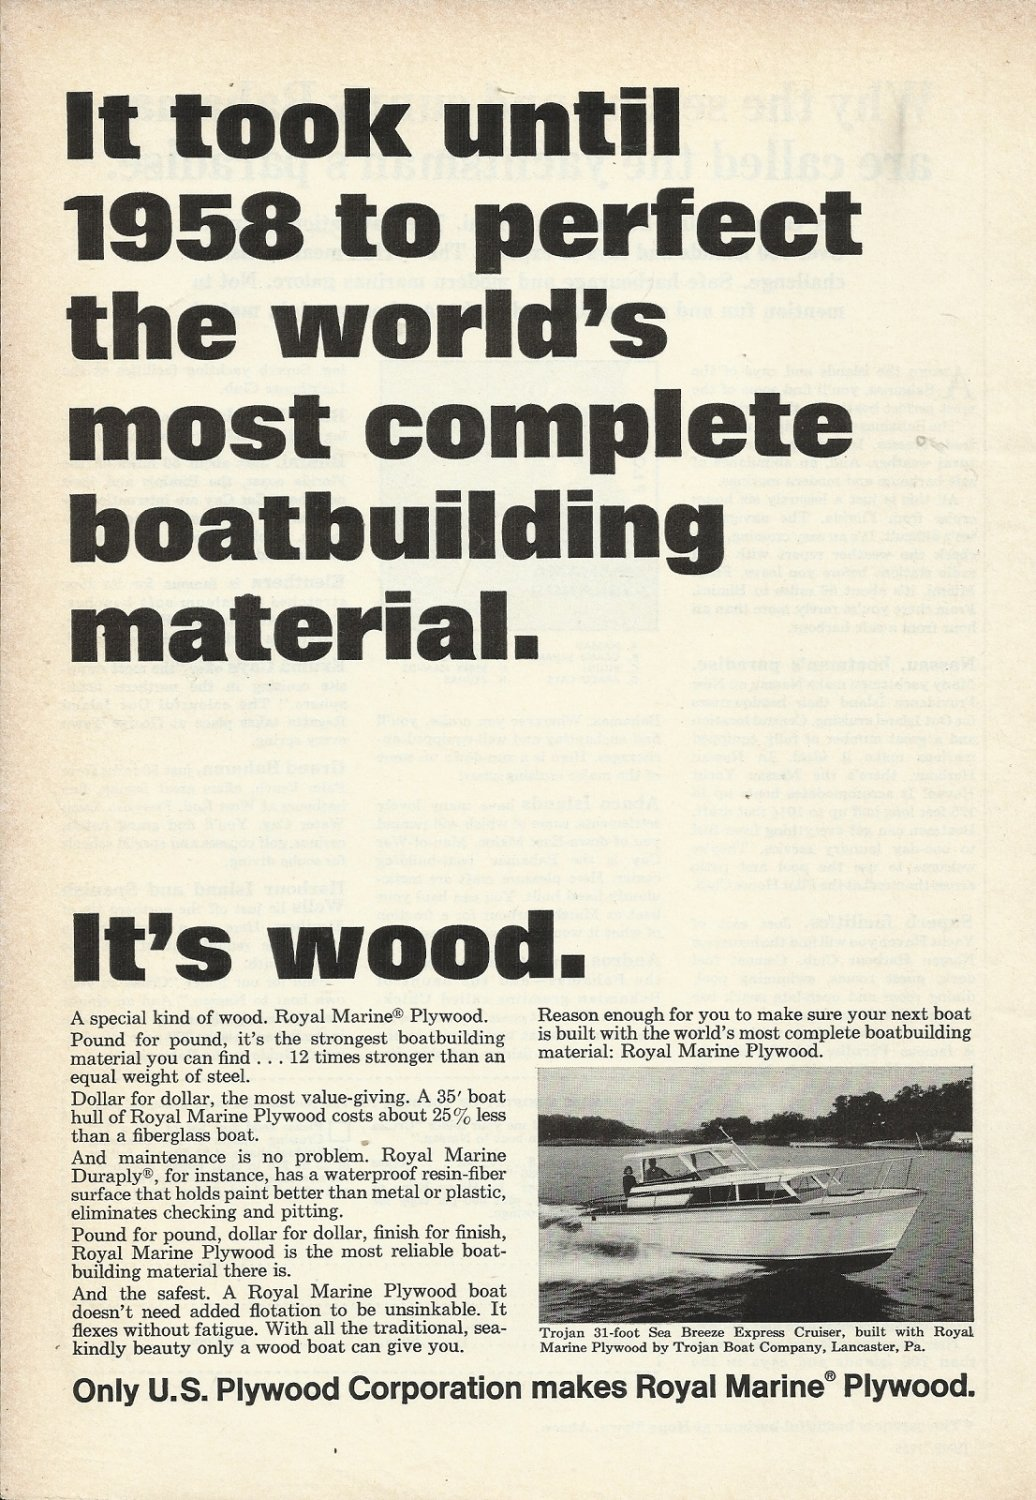 U s plywood corp ad featuring trojan sea breeze yacht